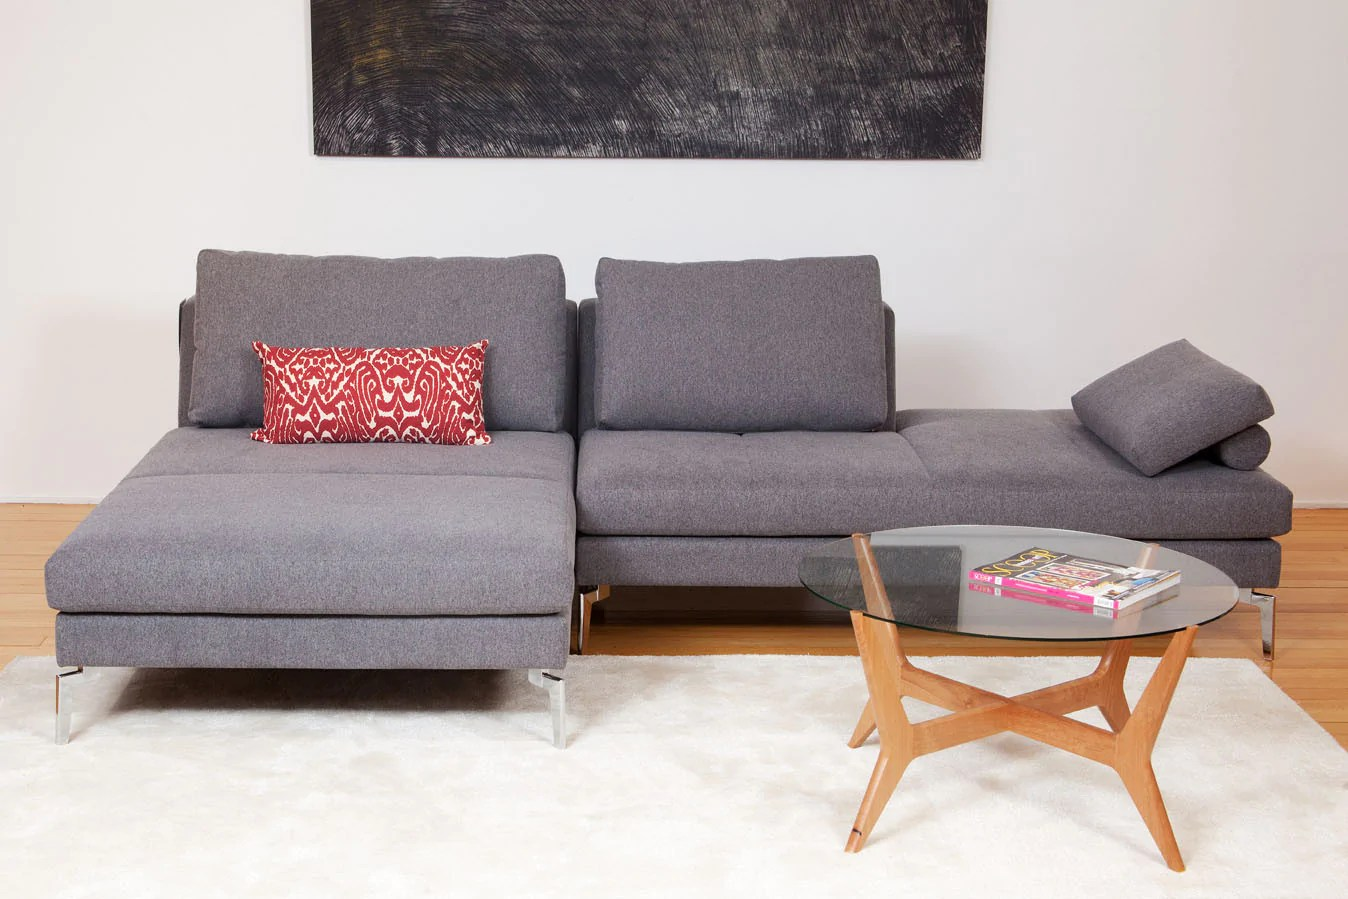 Modular Sofa Gumtree Perth Retro Sofas Perth Retro Sofas Perth All Products Living